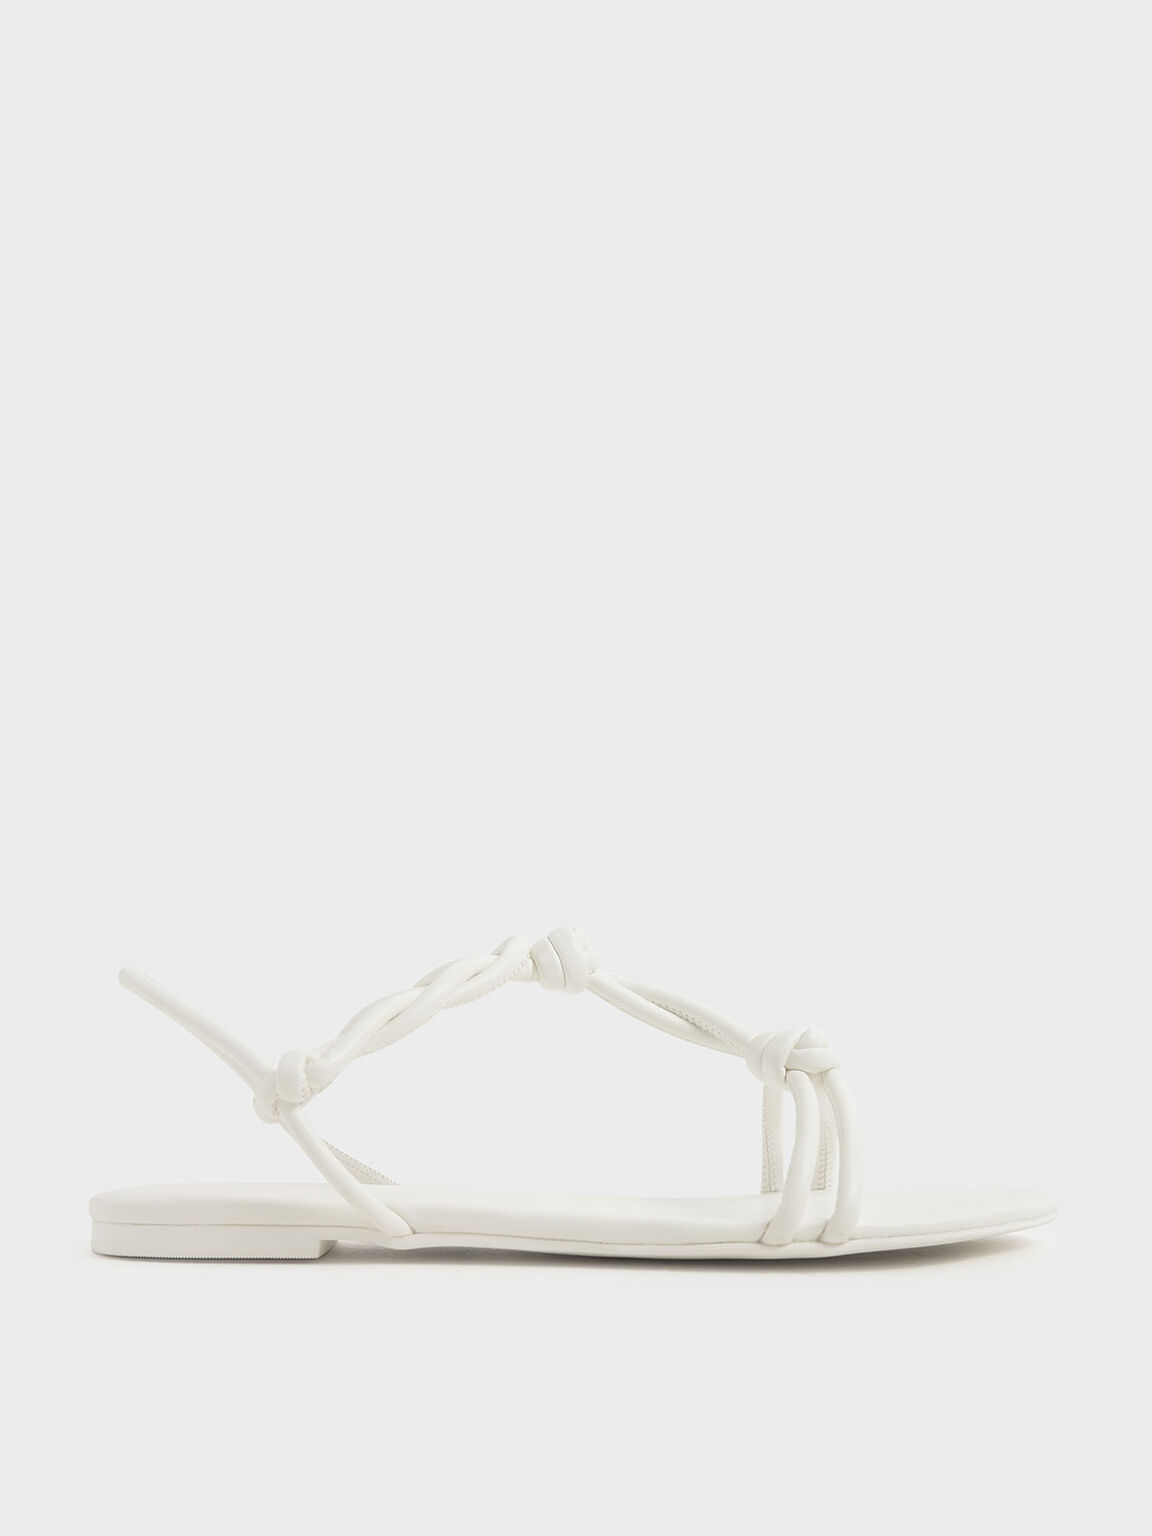 Knotted Strap Sandals, White, hi-res